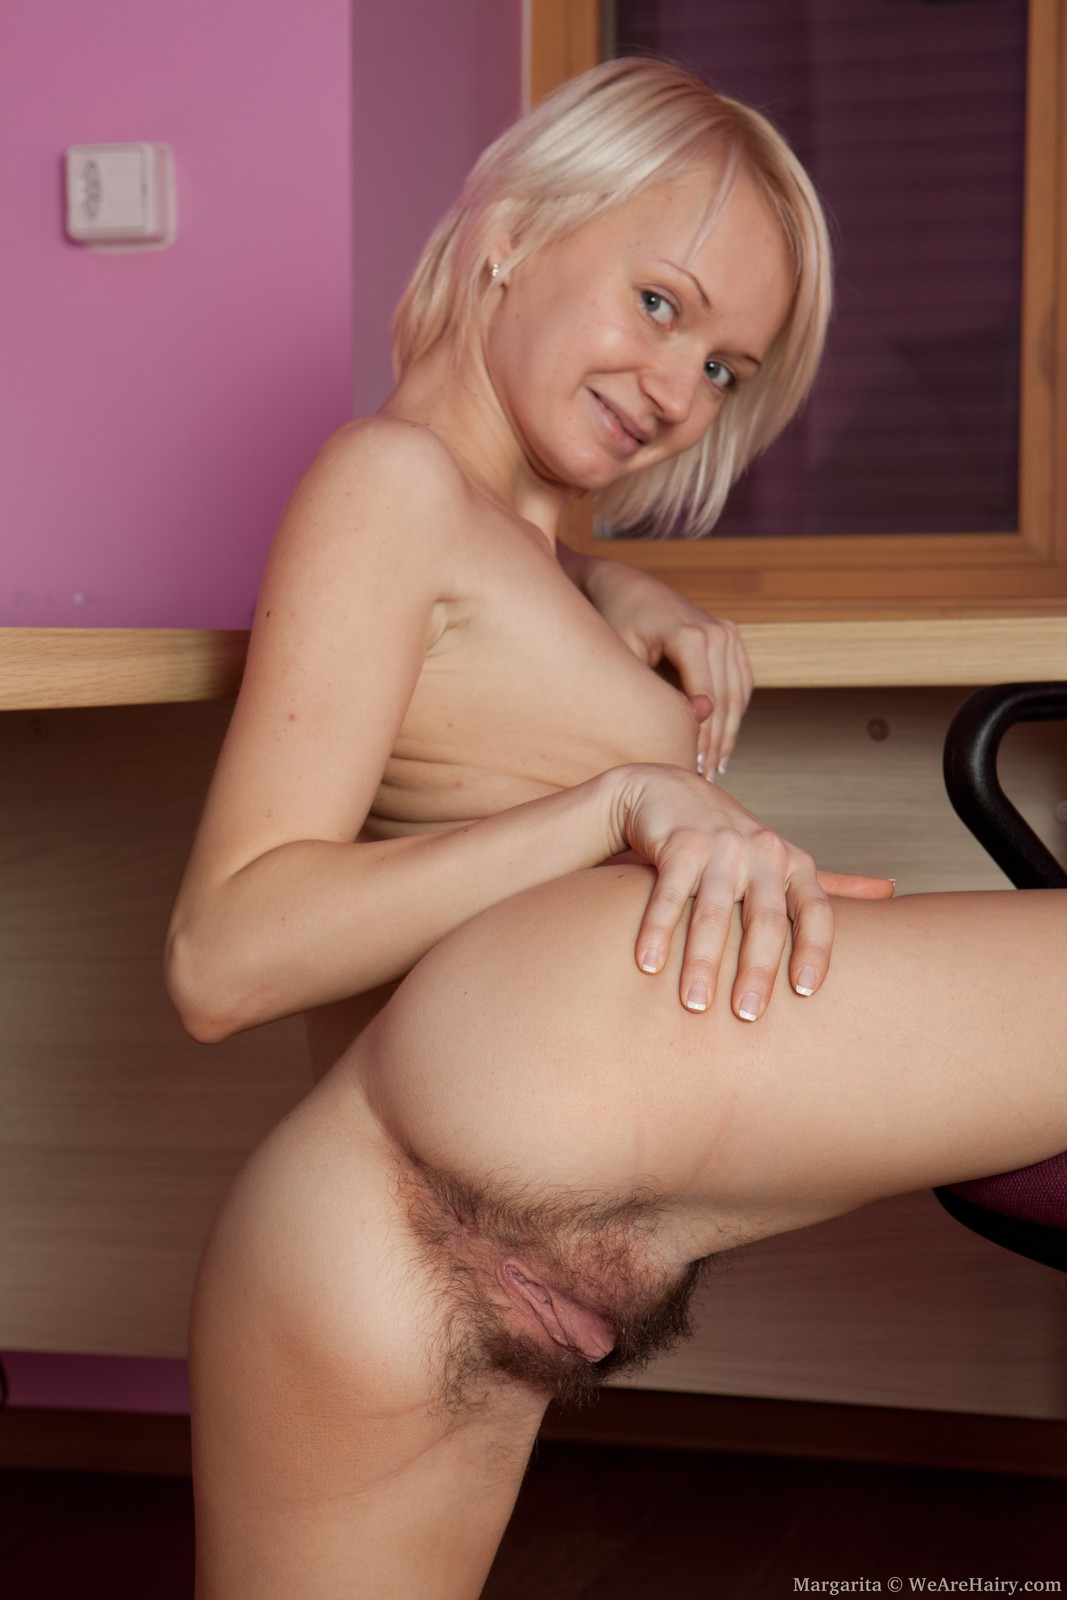 Two Hot Blonds Using the Sybian and Vibrators - Free Porn